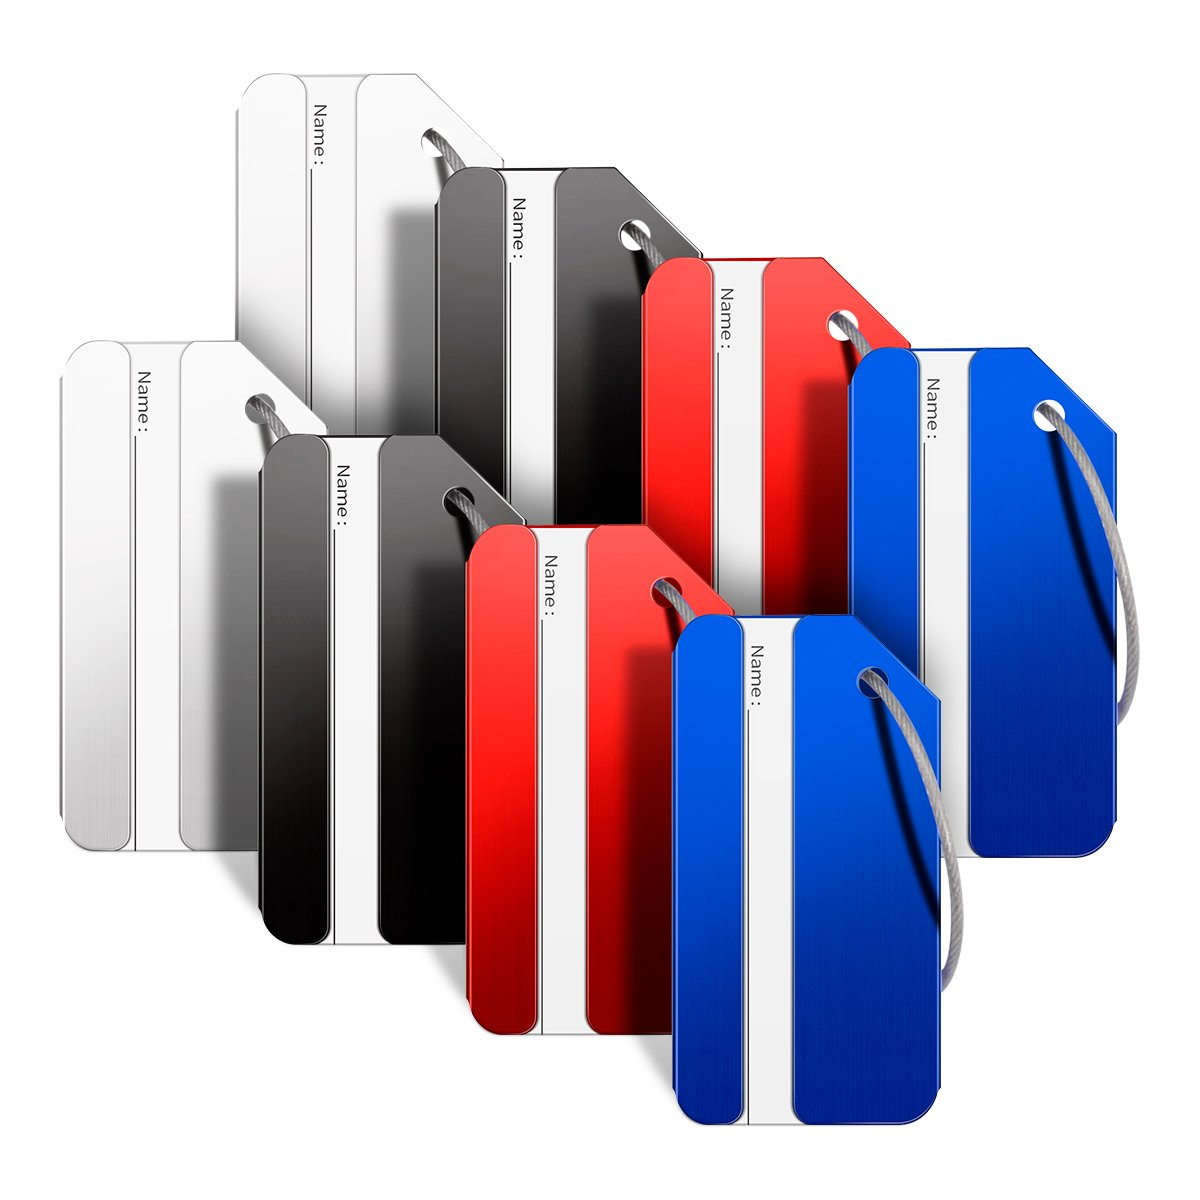 dacf629e966c Amazon.com | Luggage Tags, Bag Tag Travel ID Labels Tag For Baggage  Suitcases Bags, 8 Pack | Luggage Tags